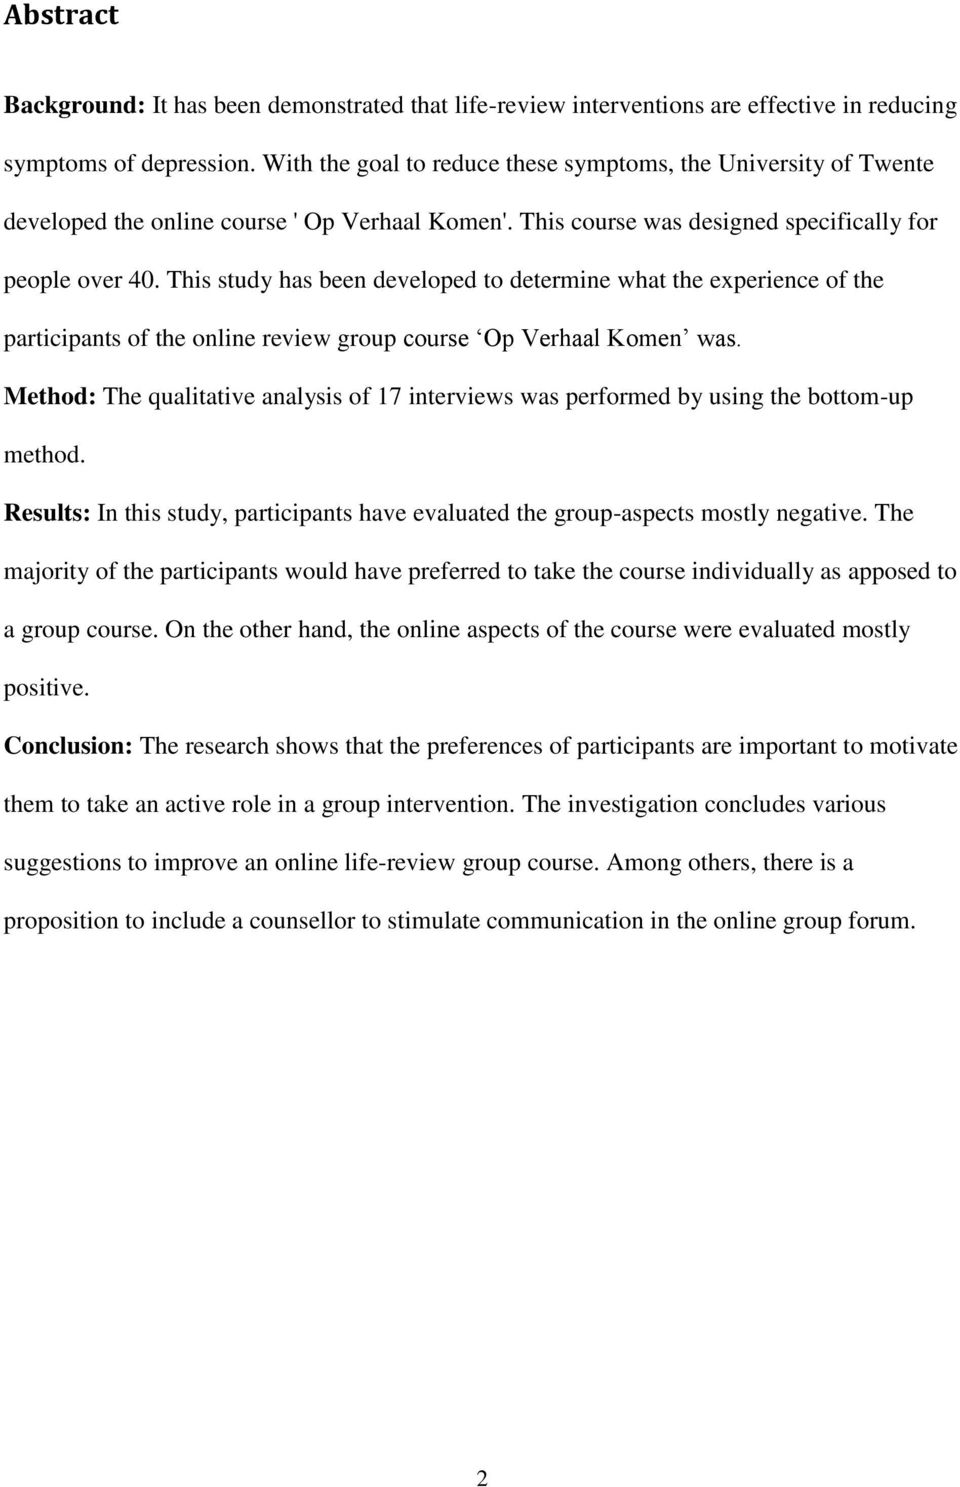 This study has been developed to determine what the experience of the participants of the online review group course Op Verhaal Komen was.